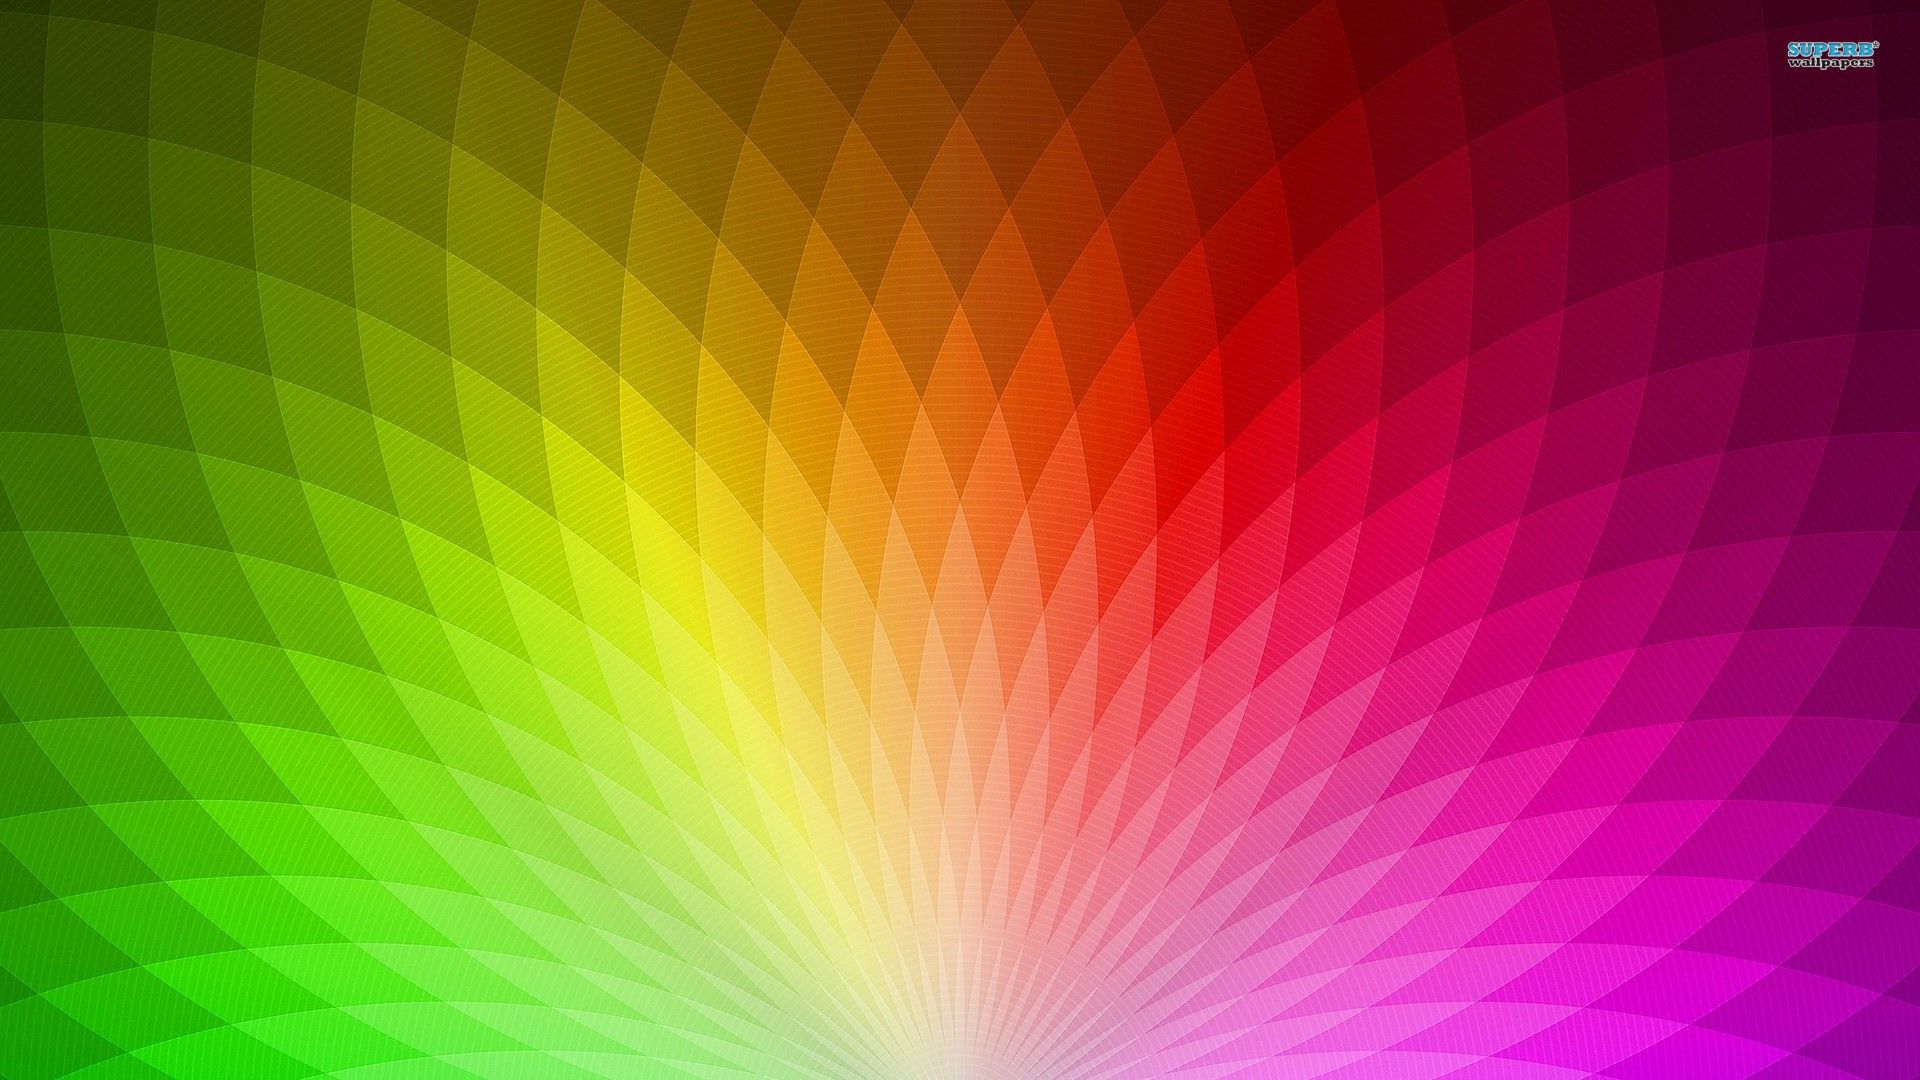 Hd wallpaper rainbow - Wallpaper Smileys Description Abstract Rainbow Wallpapers Colors